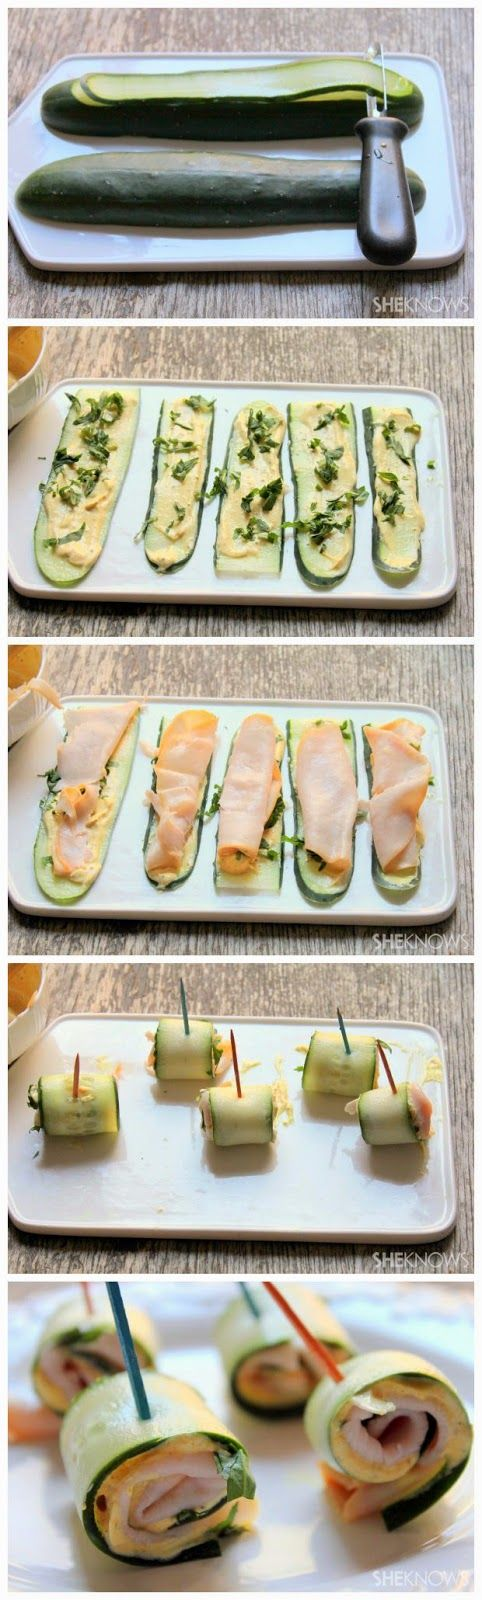 Snack Idea: Cucumber rollups with hummus and turkey #cleaneating #protein